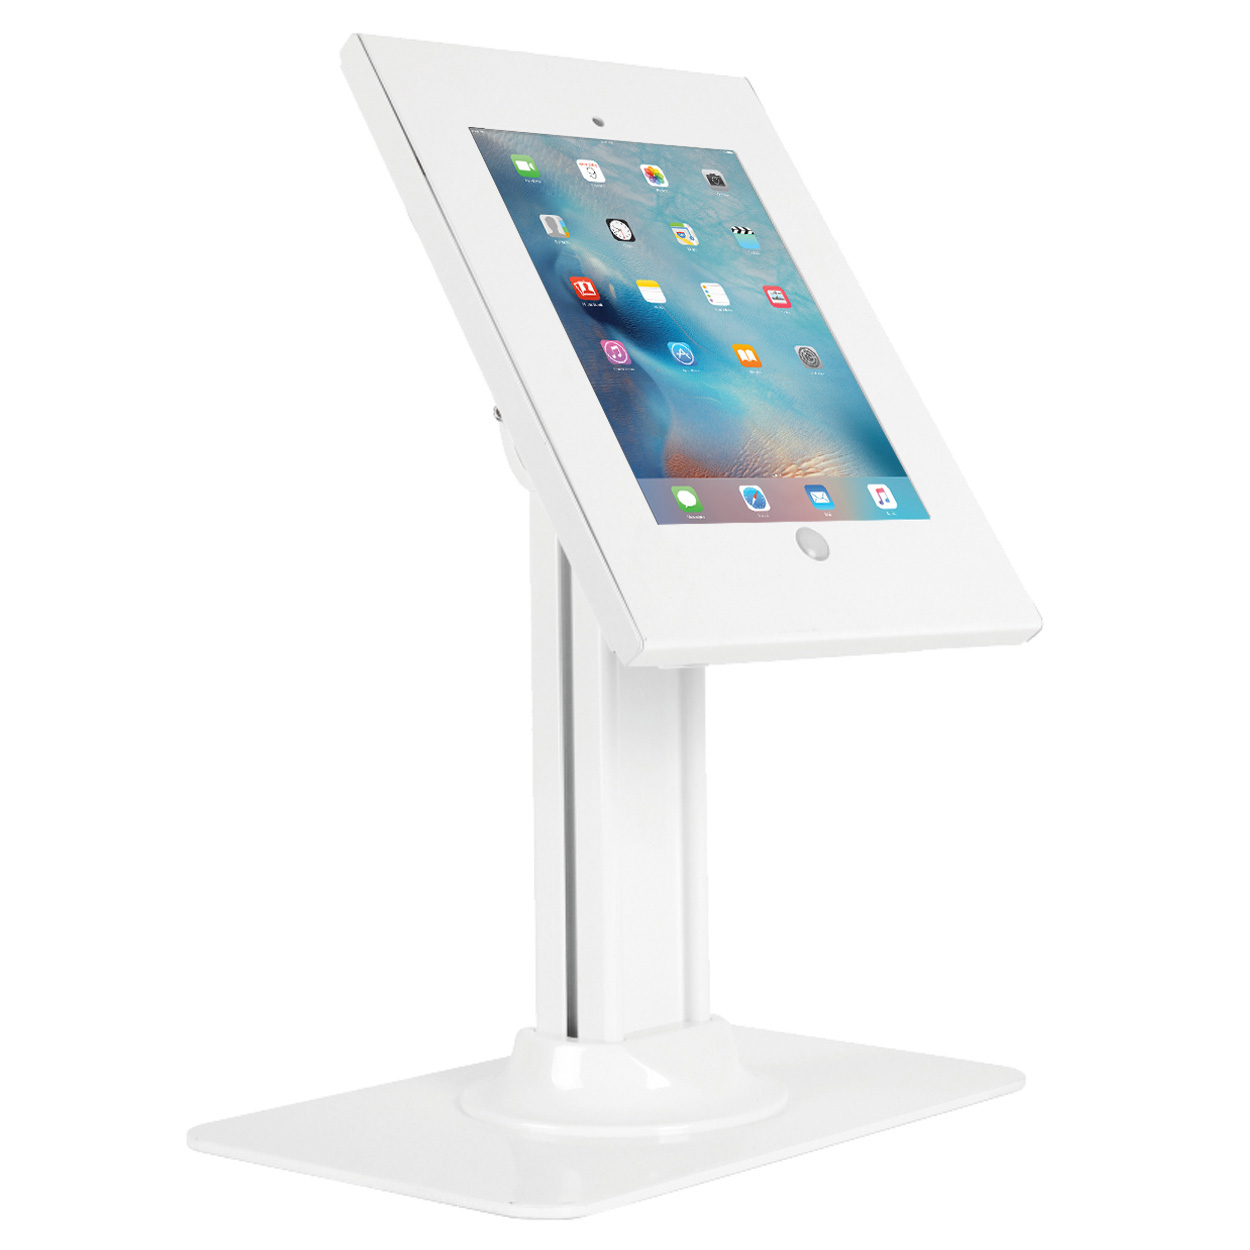 Anti-Theft iPad Kiosk Stand for 9.7 inch Apple Tablets (iPad / Air / Air 2 / 9.7